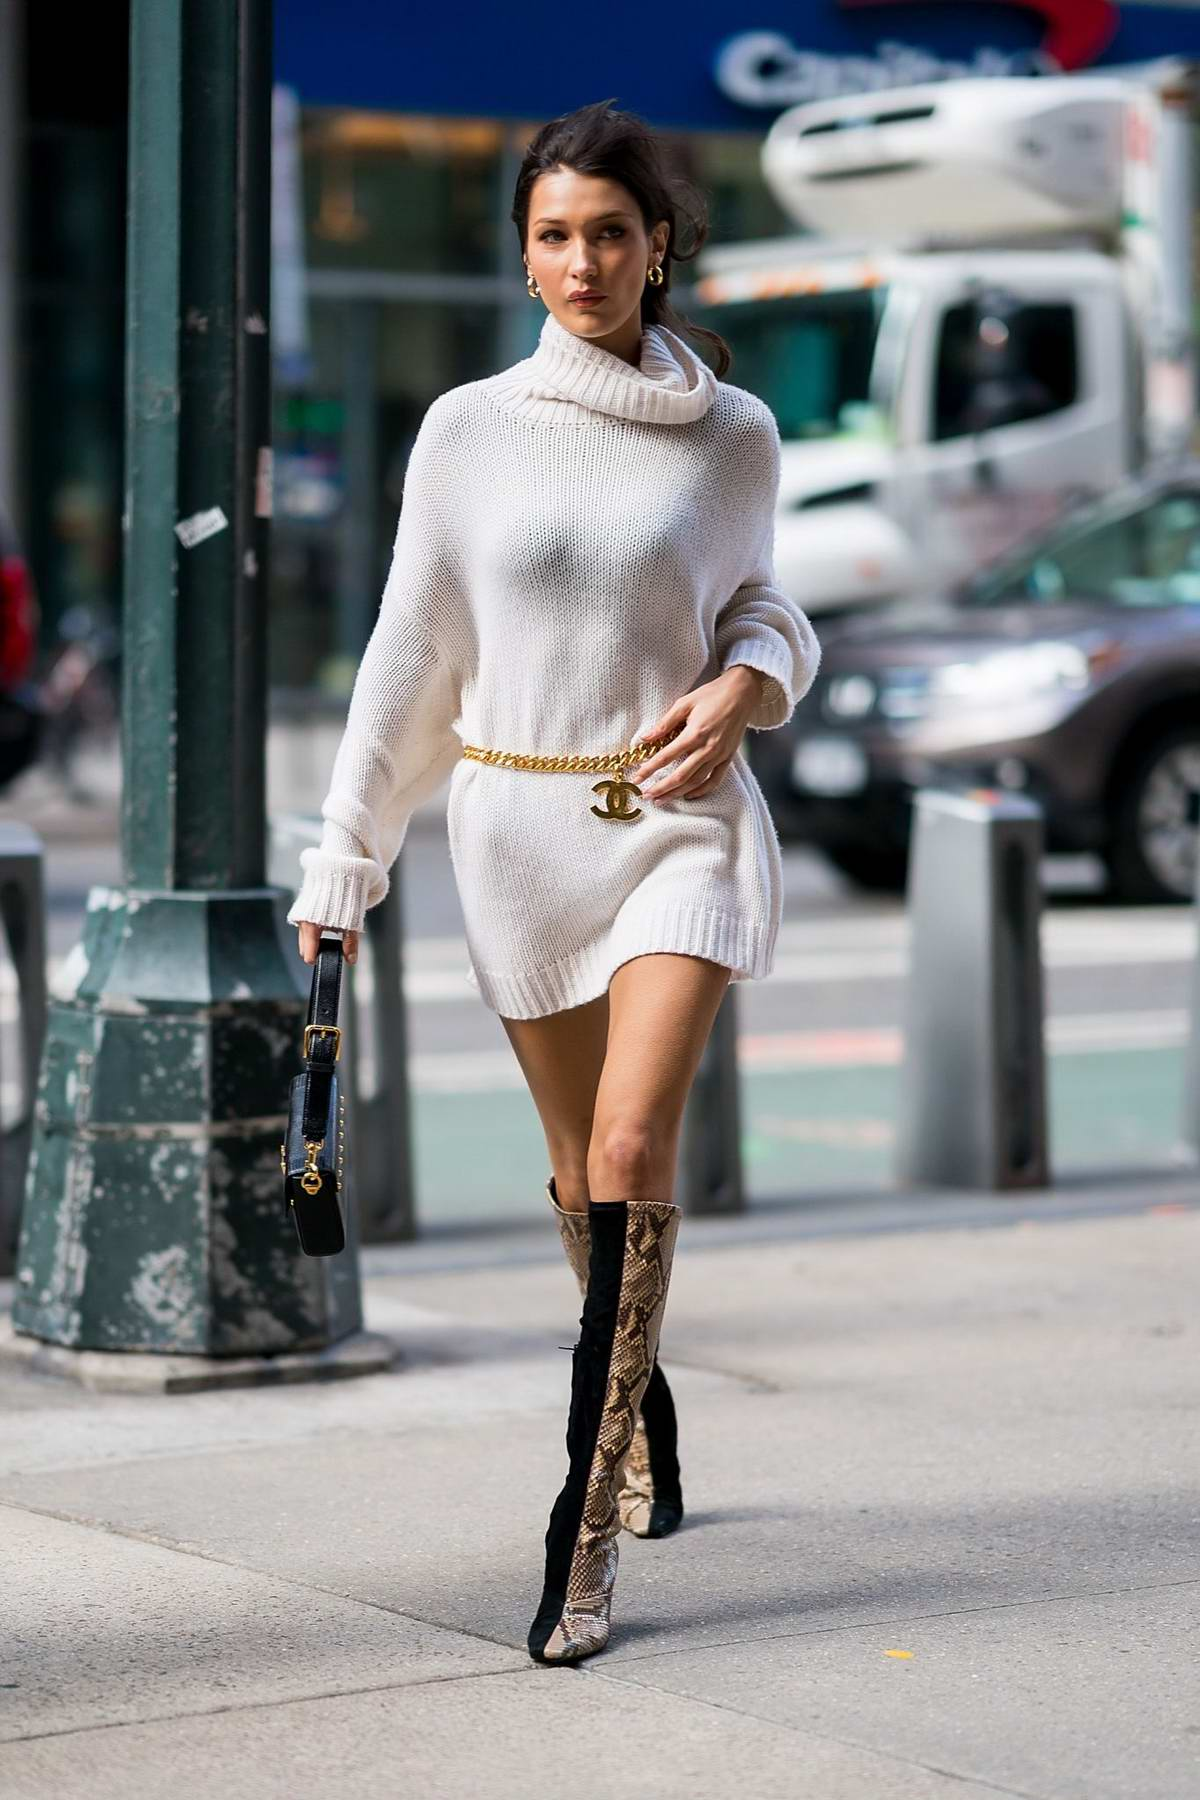 Dress and Boots Combo\u0027s How to Wear Boots with Dresses